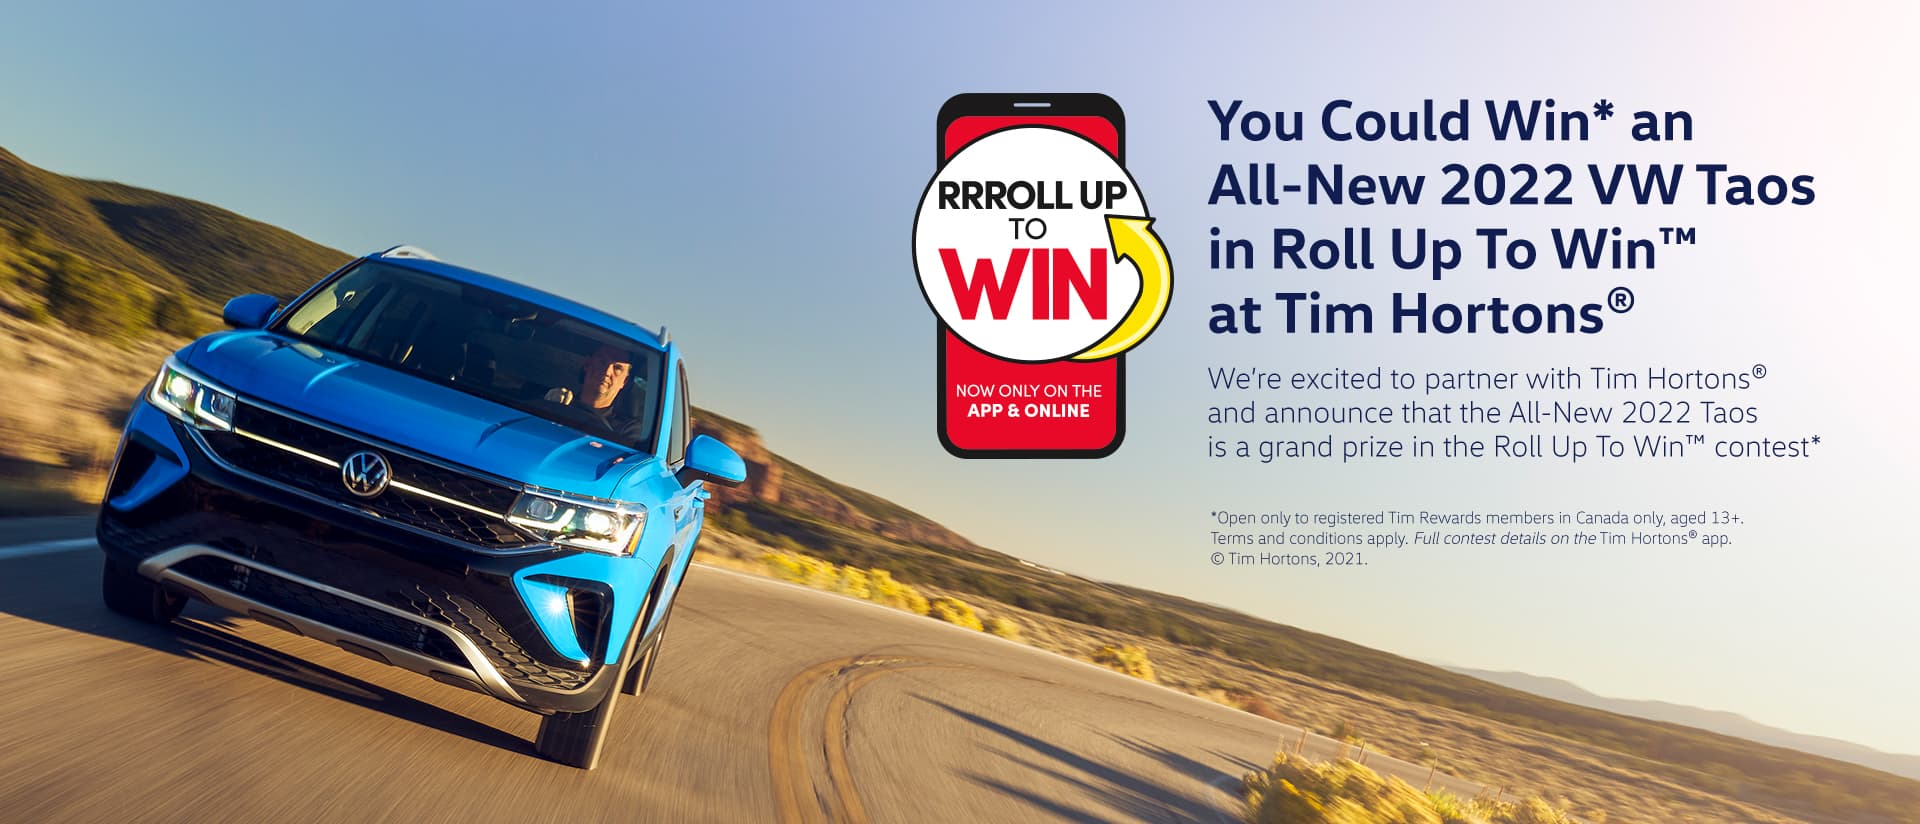 Roll Up To Win